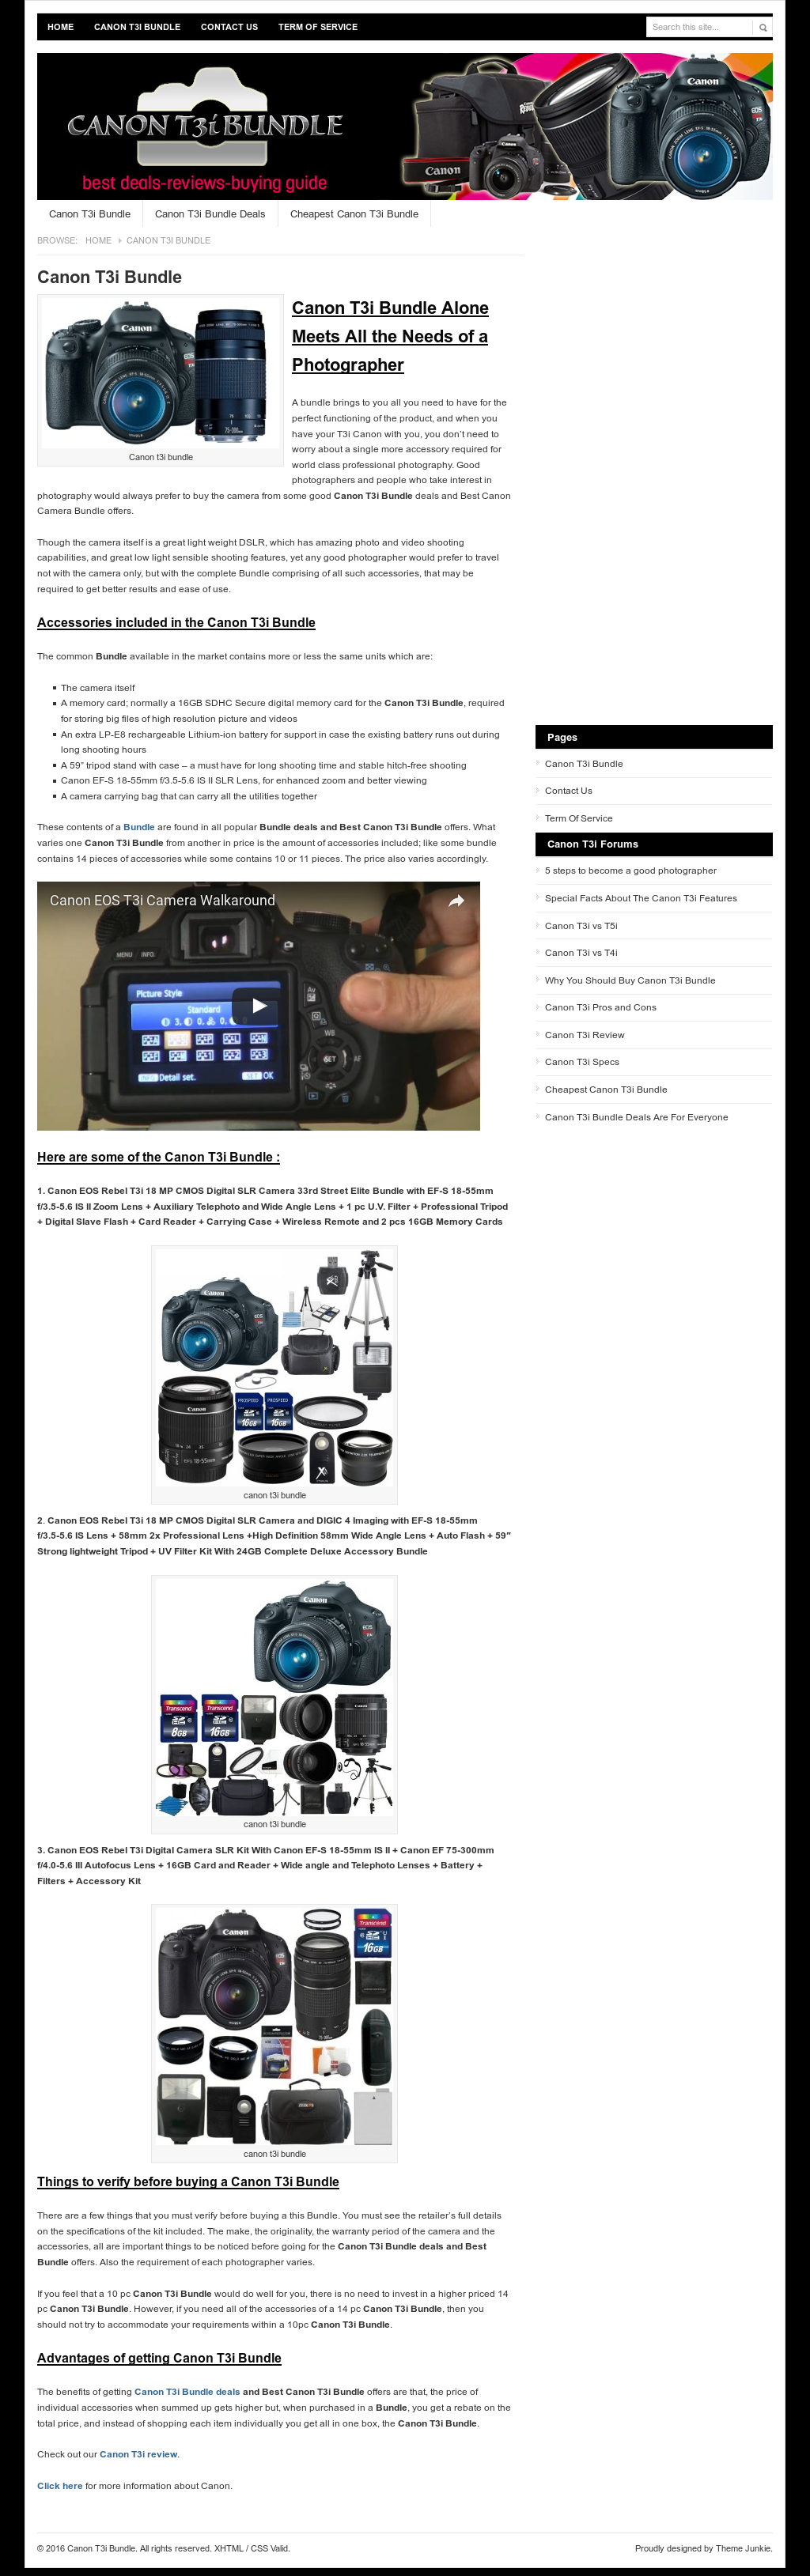 Canon T3i Bundle Competitors, Revenue and Employees - Owler